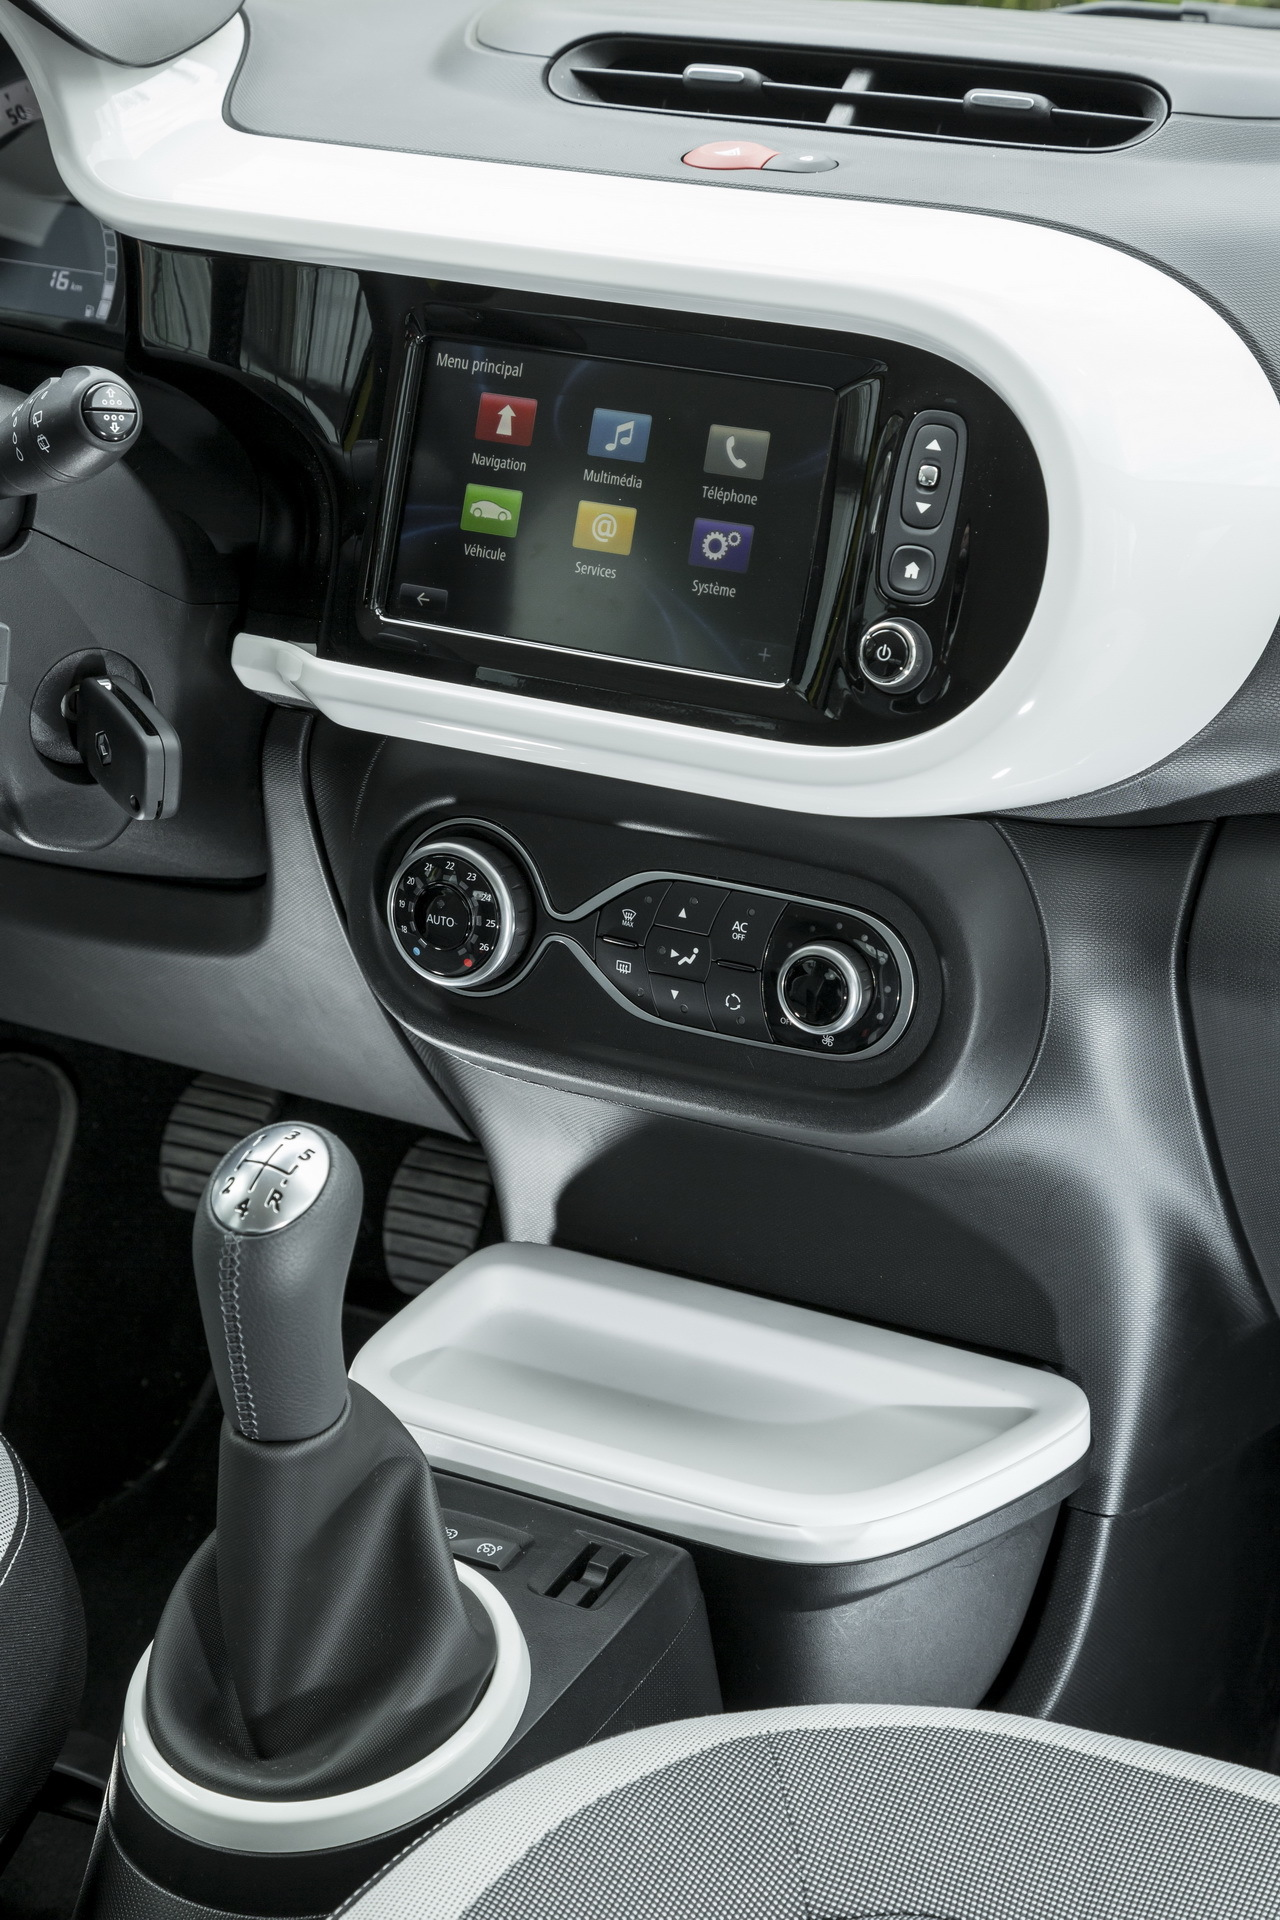 nouvelle renault twingo iii 2014 premi res indiscr tions photo 41 l 39 argus. Black Bedroom Furniture Sets. Home Design Ideas